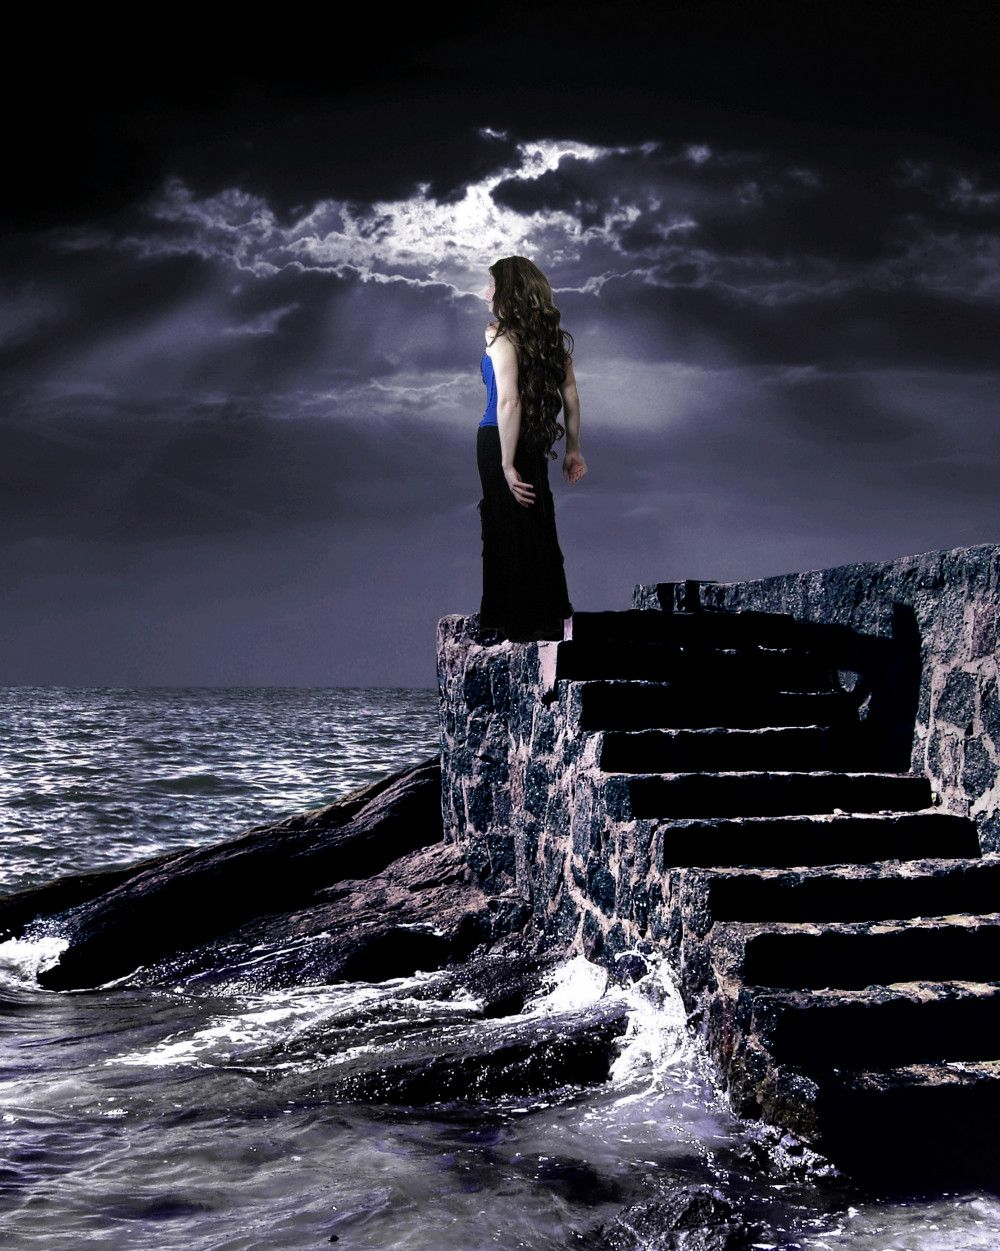 the angels in heaven above or the demons under the sea could break the beautiful annabel lee by her kingdom by the sea